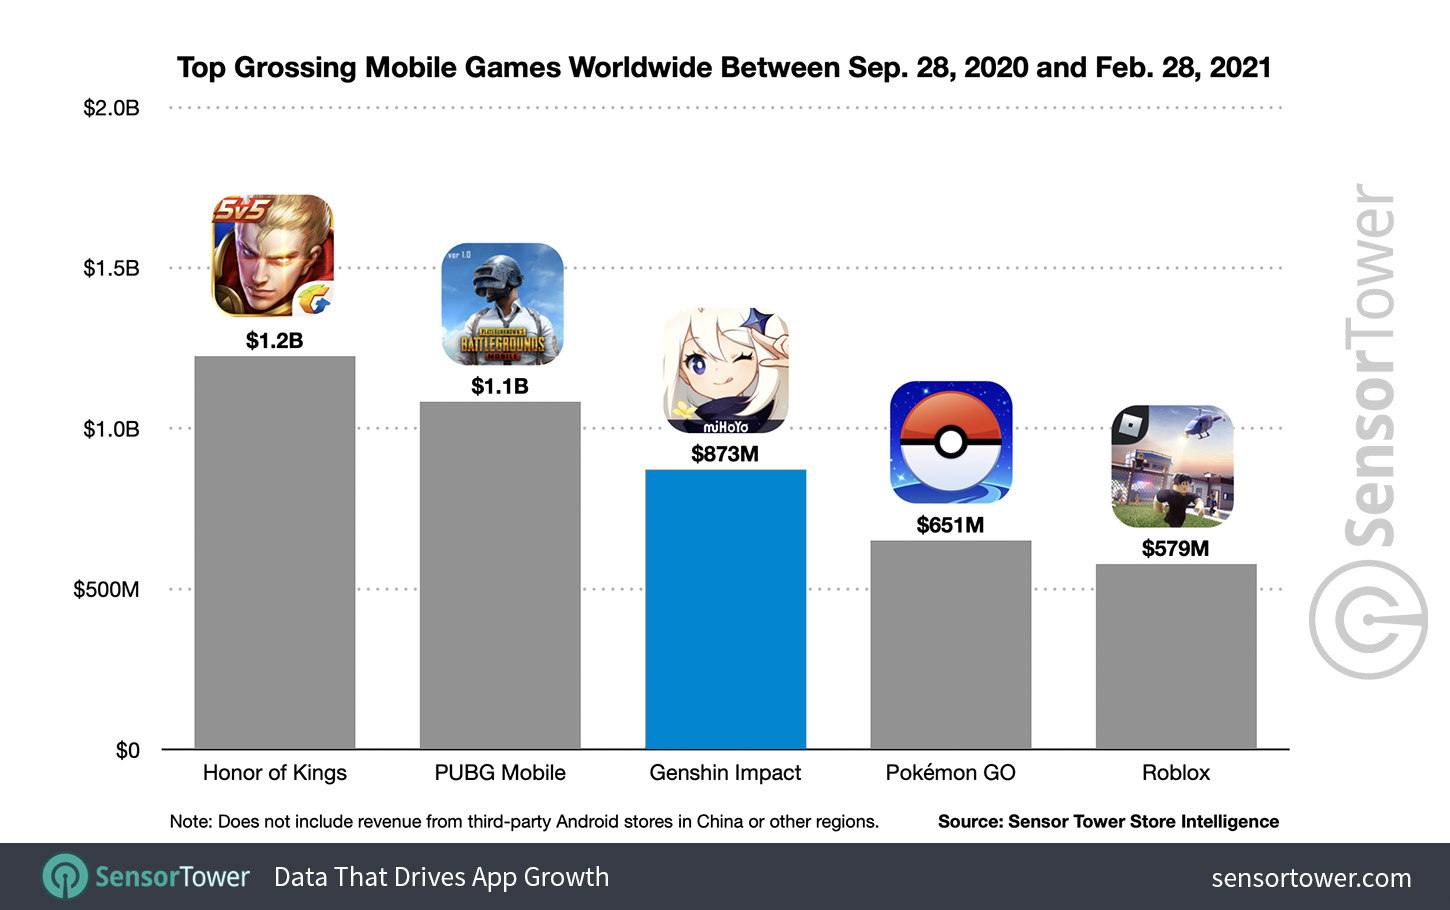 The highest grossing mobile games in the world between September 28, 2020 and February 28, 2021